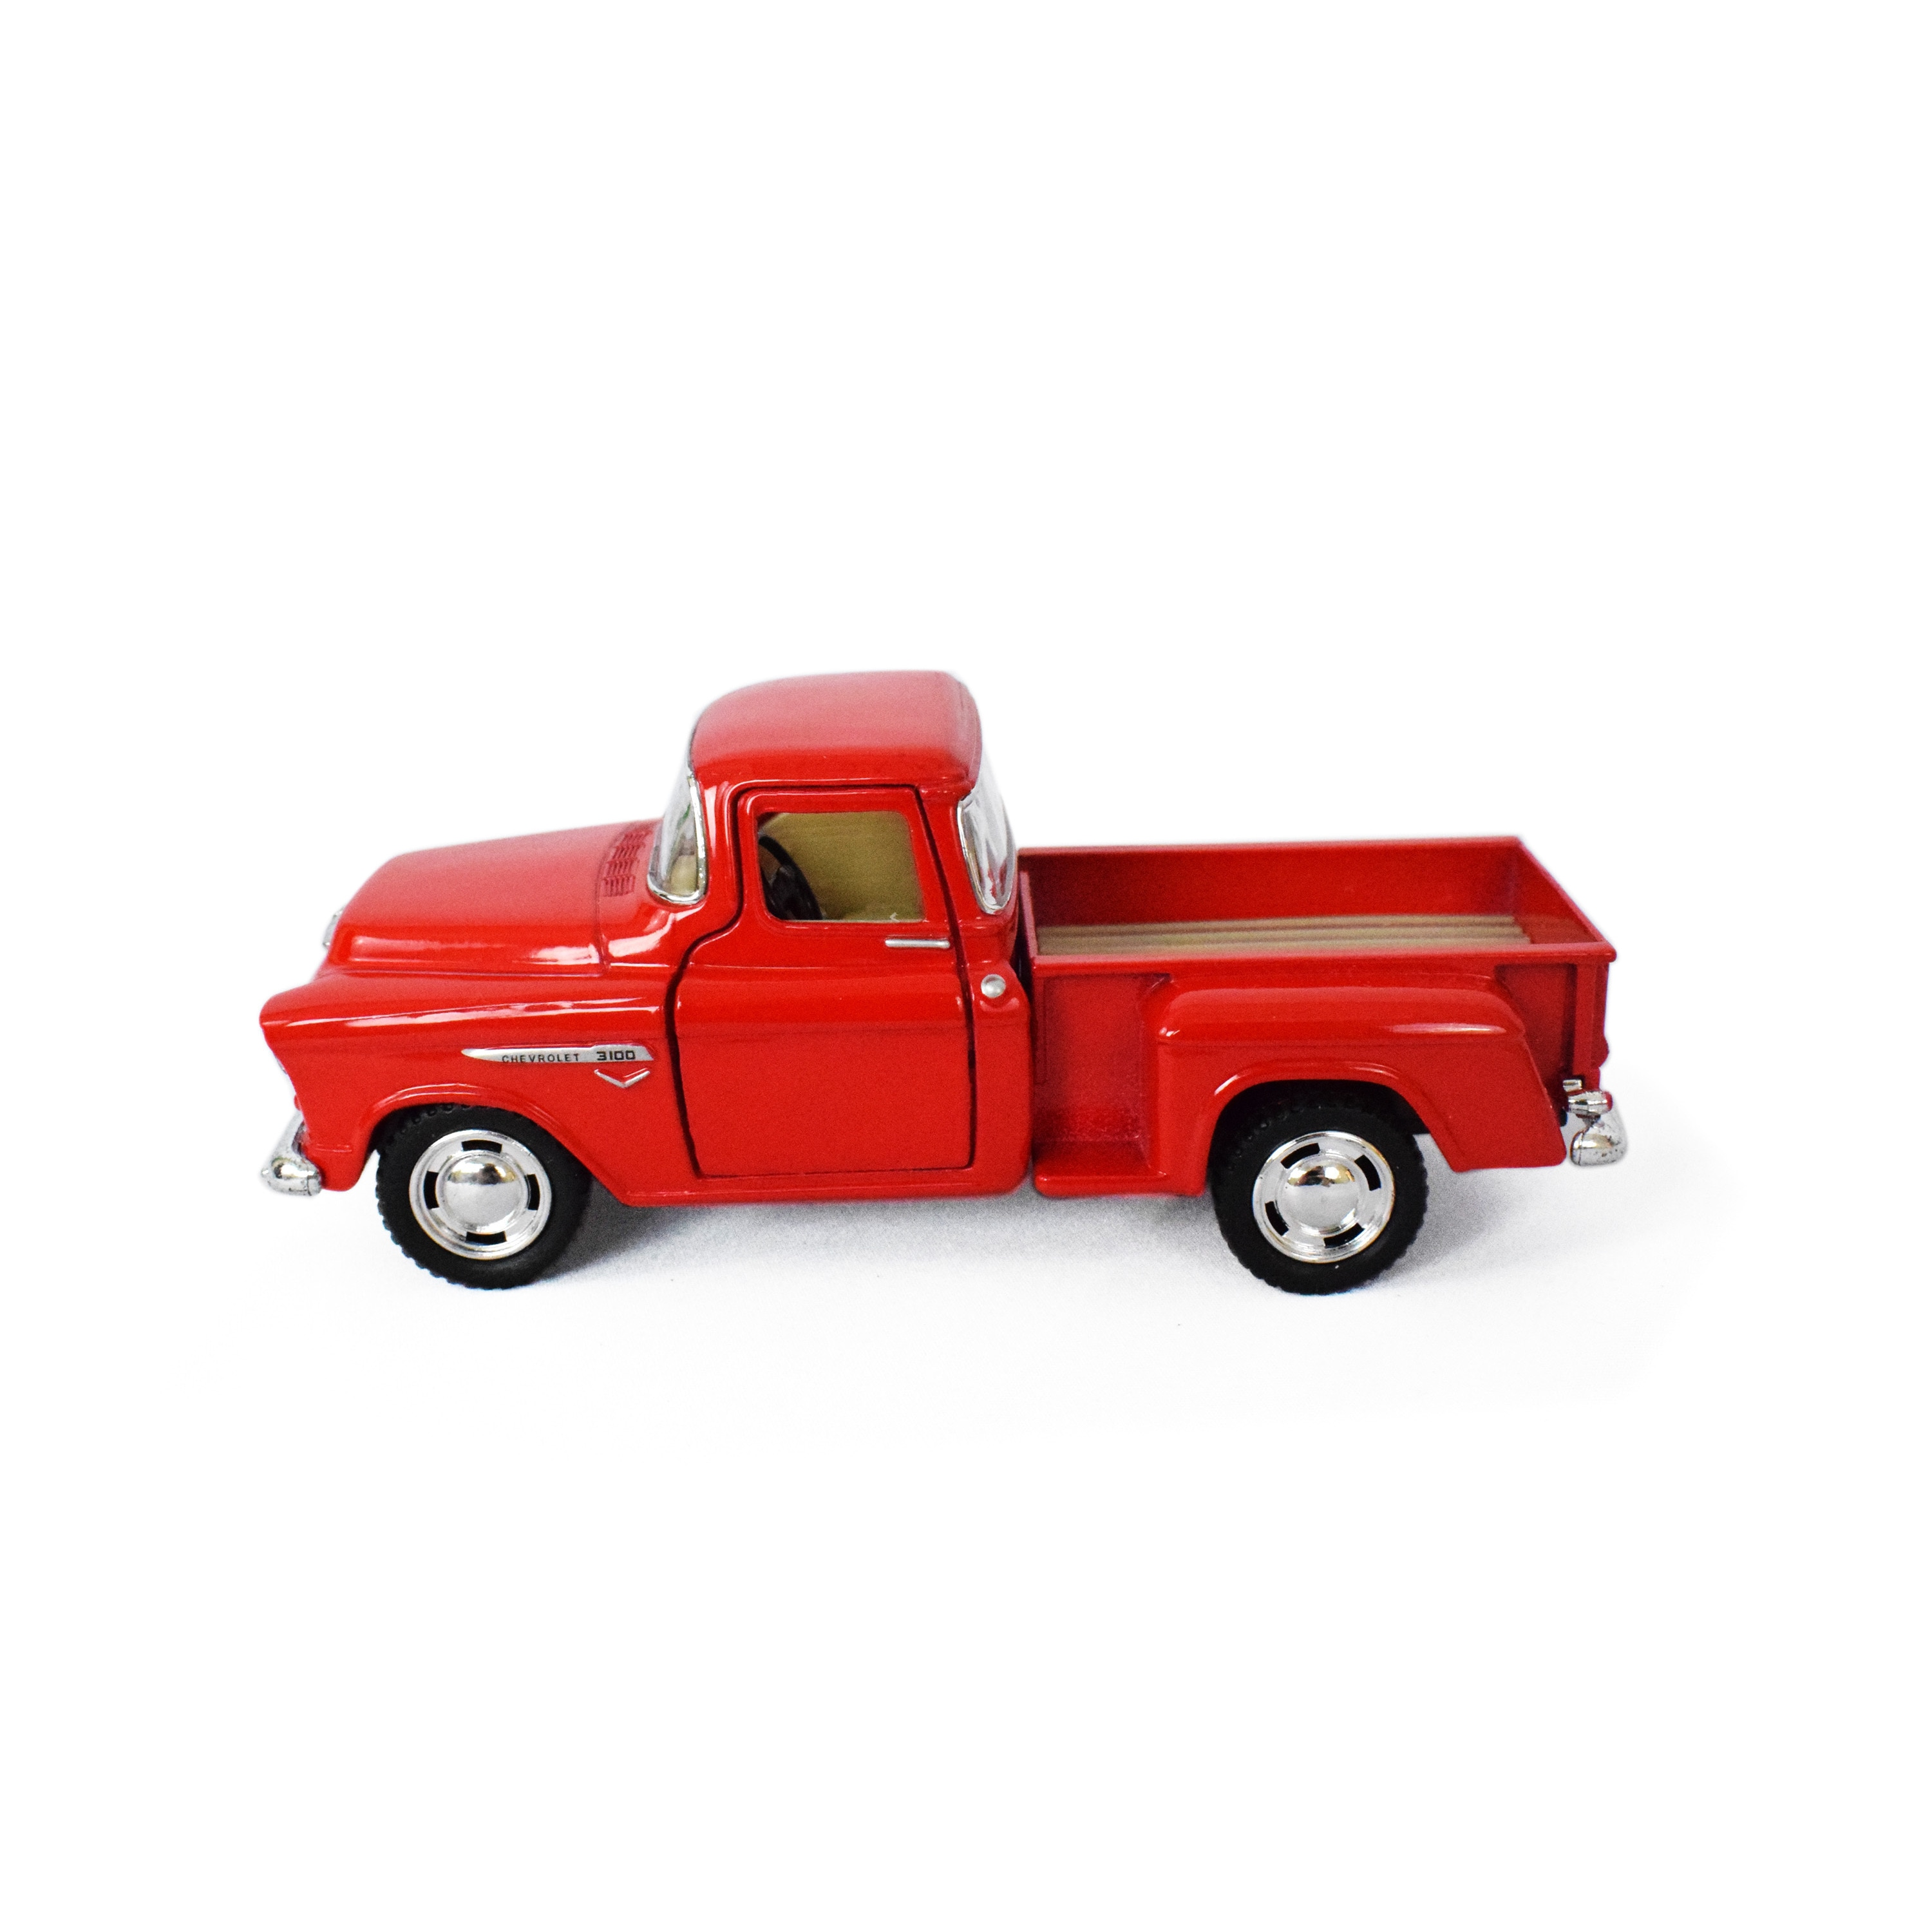 Kinsmart 1955 Chevy Stepside Pickup Diecast 1/32 Scale Collectible (Diecast 1955 Chevy Stepside Pickup- Red) (Metal)